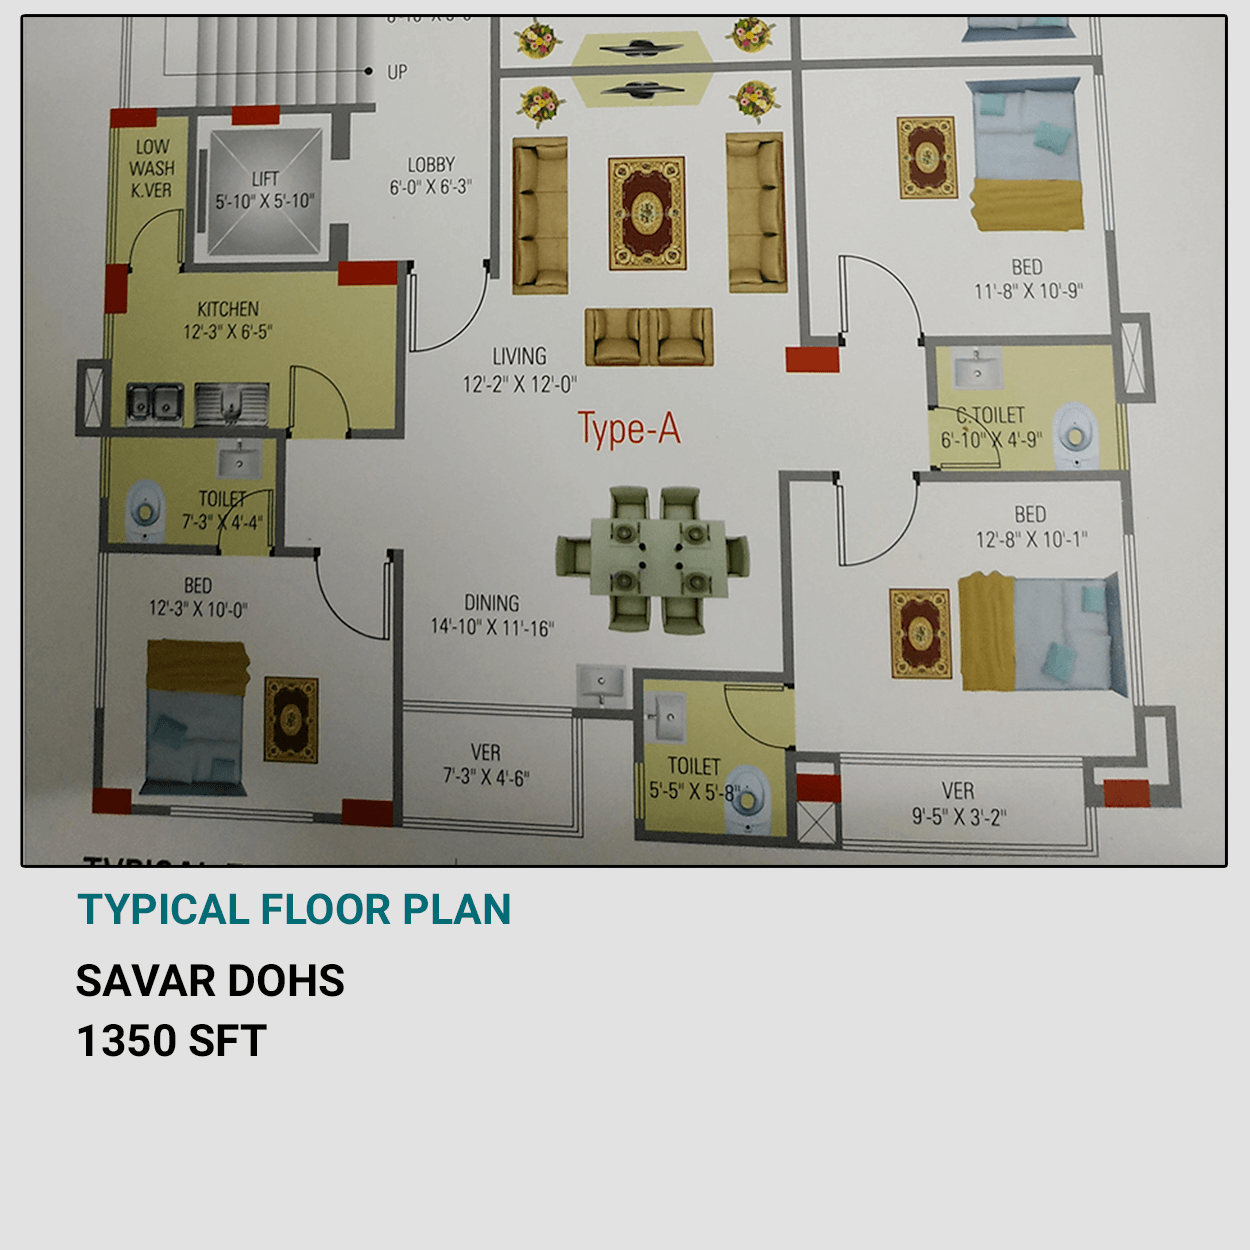 Exclusive 1350 sft Flat For Sale at DOHS, Savar